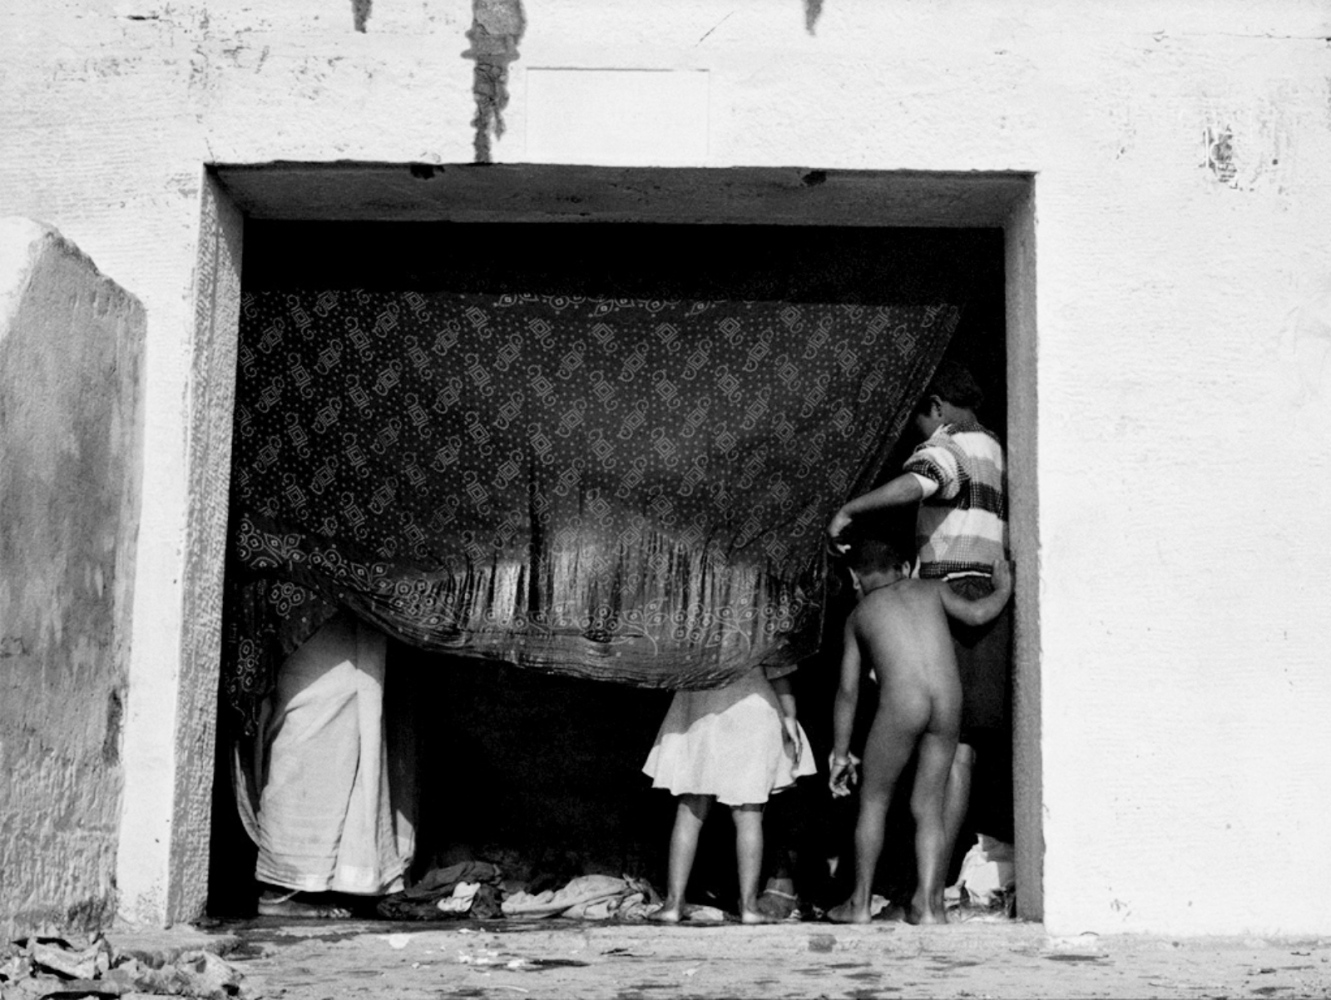 Child's Bum in Doorway, Varanasi, India, November 2003